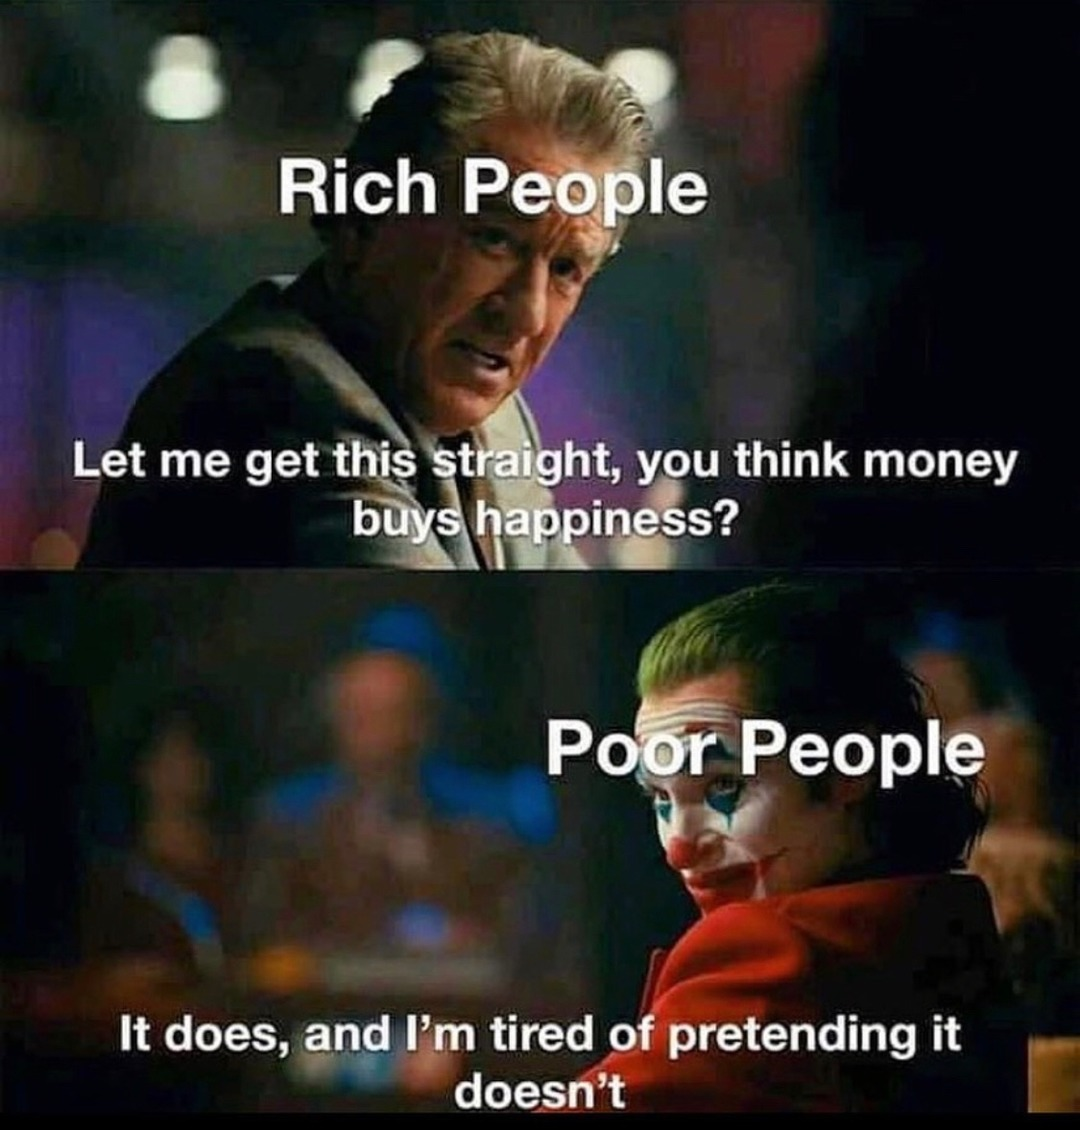 rich people are gonna get what they fucking deserve - meme